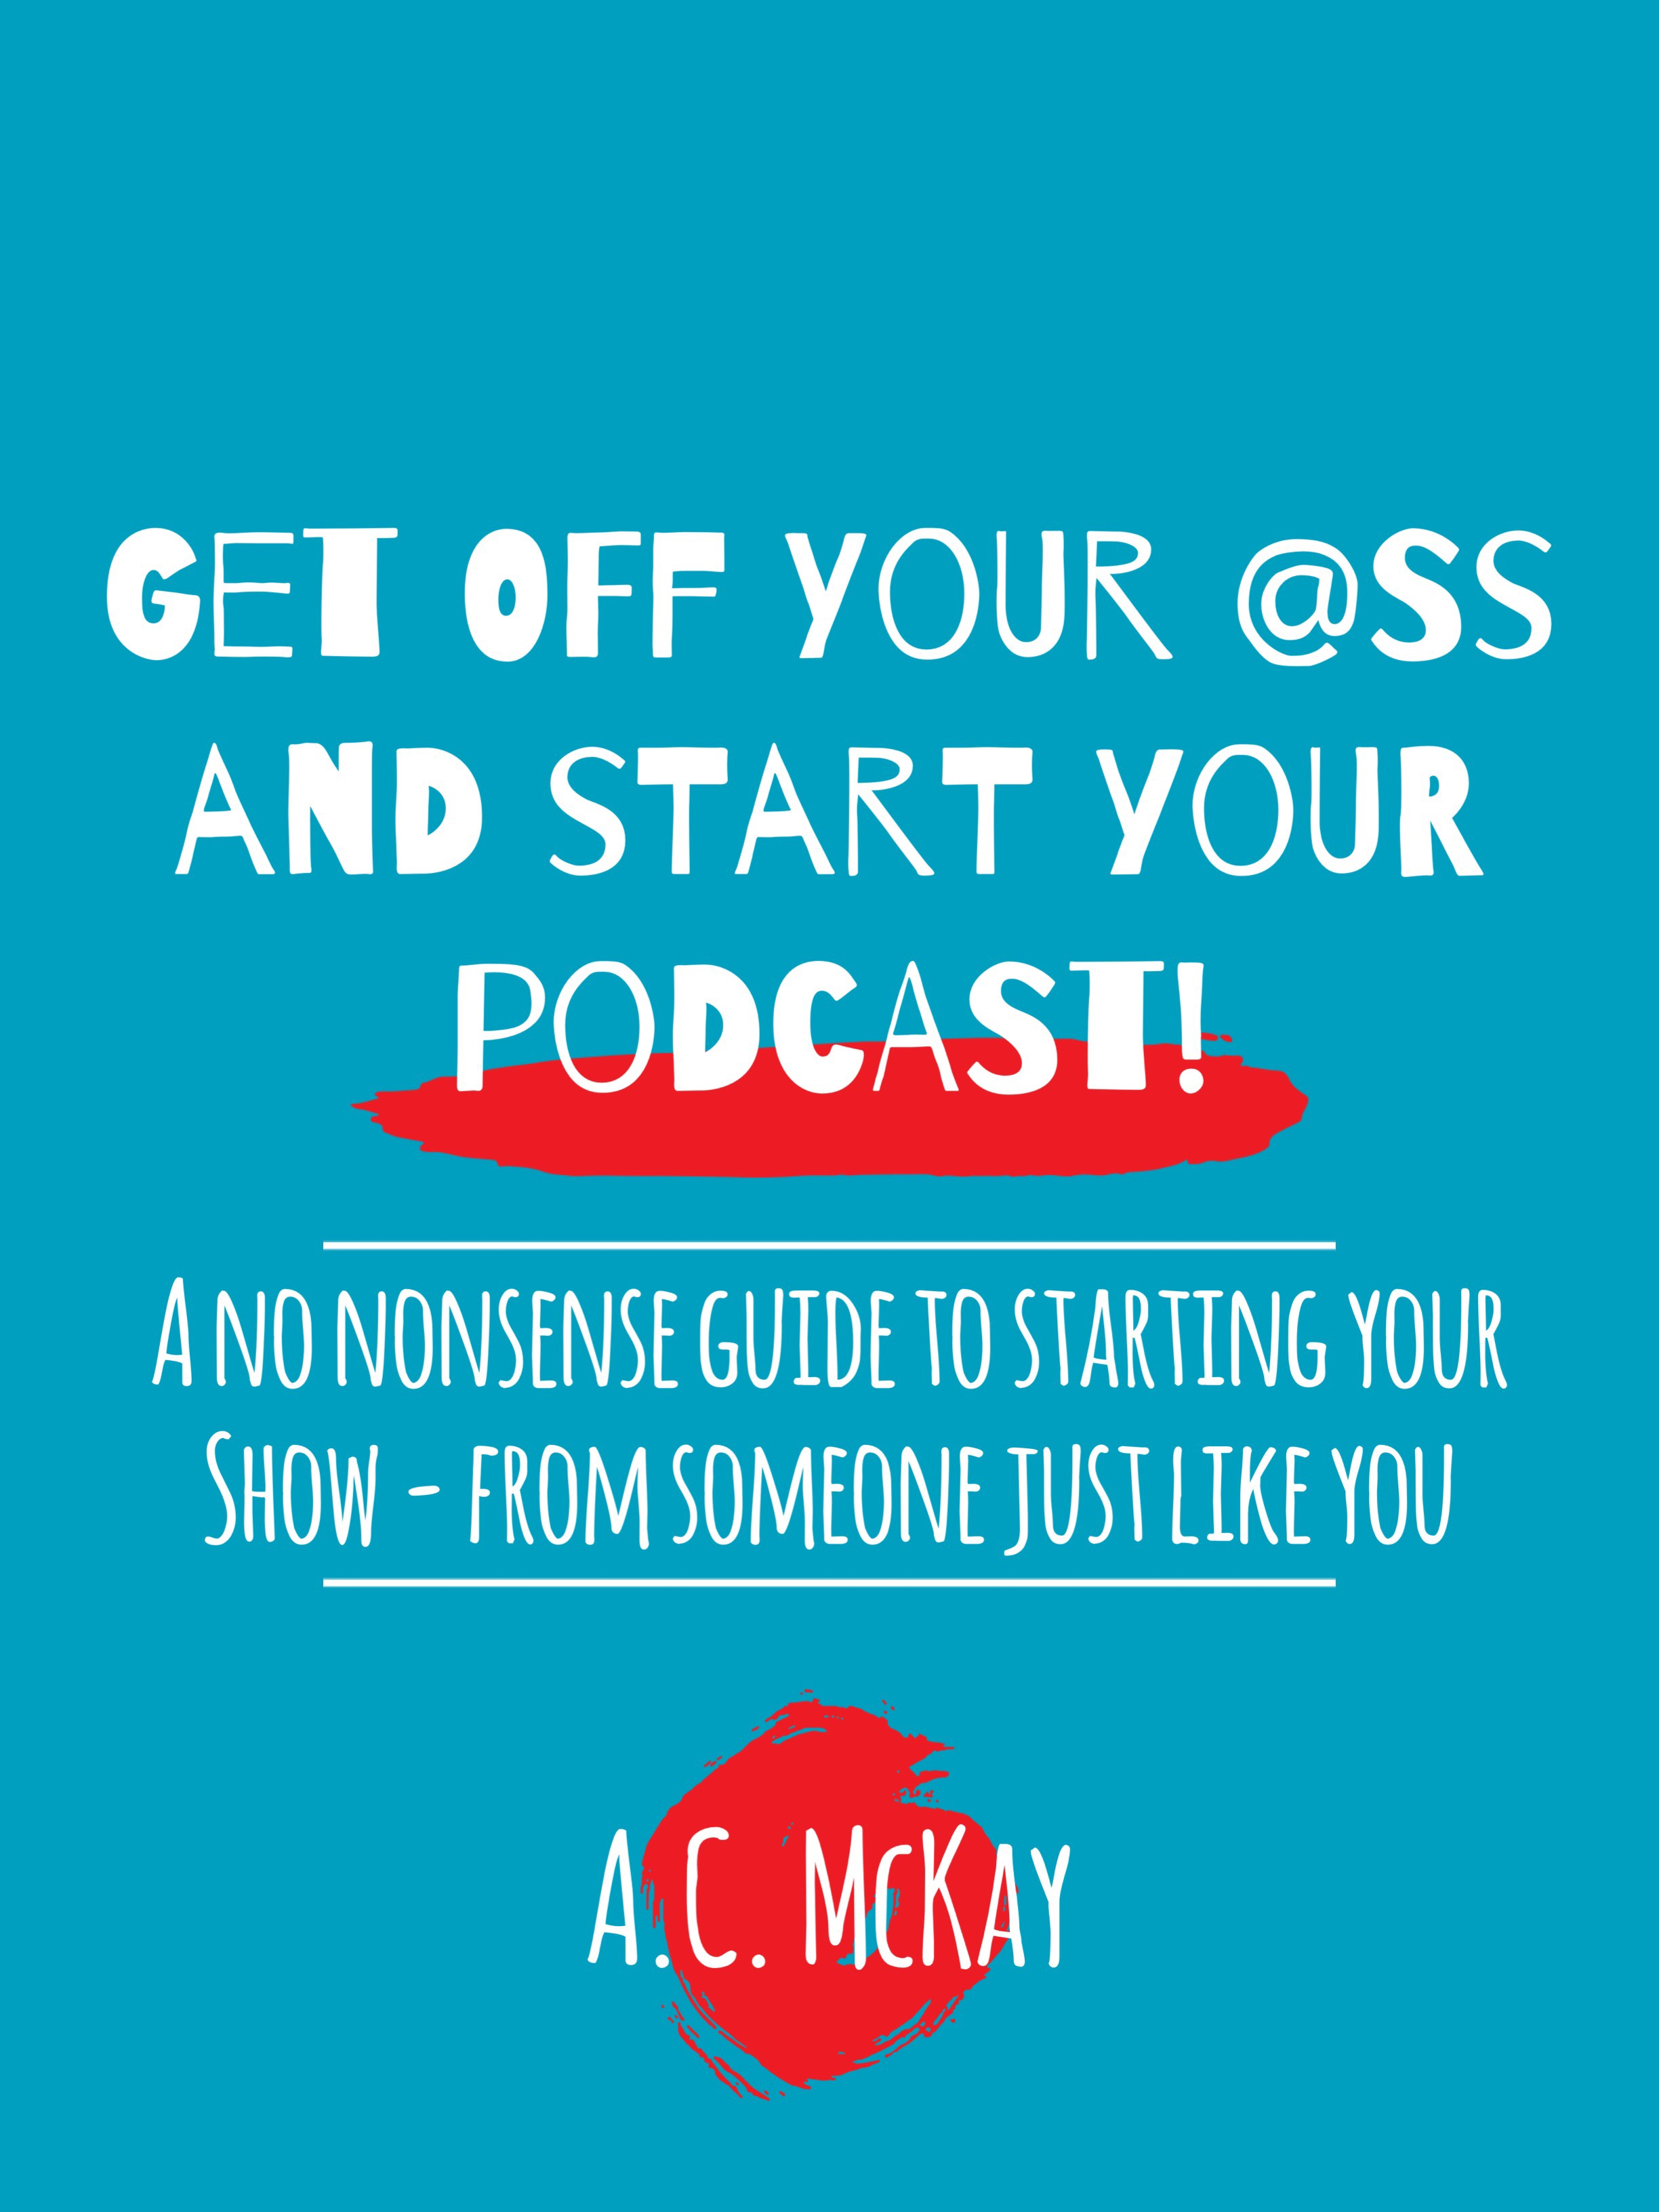 PODCAST EBOOK COVER UPDATED.JPG